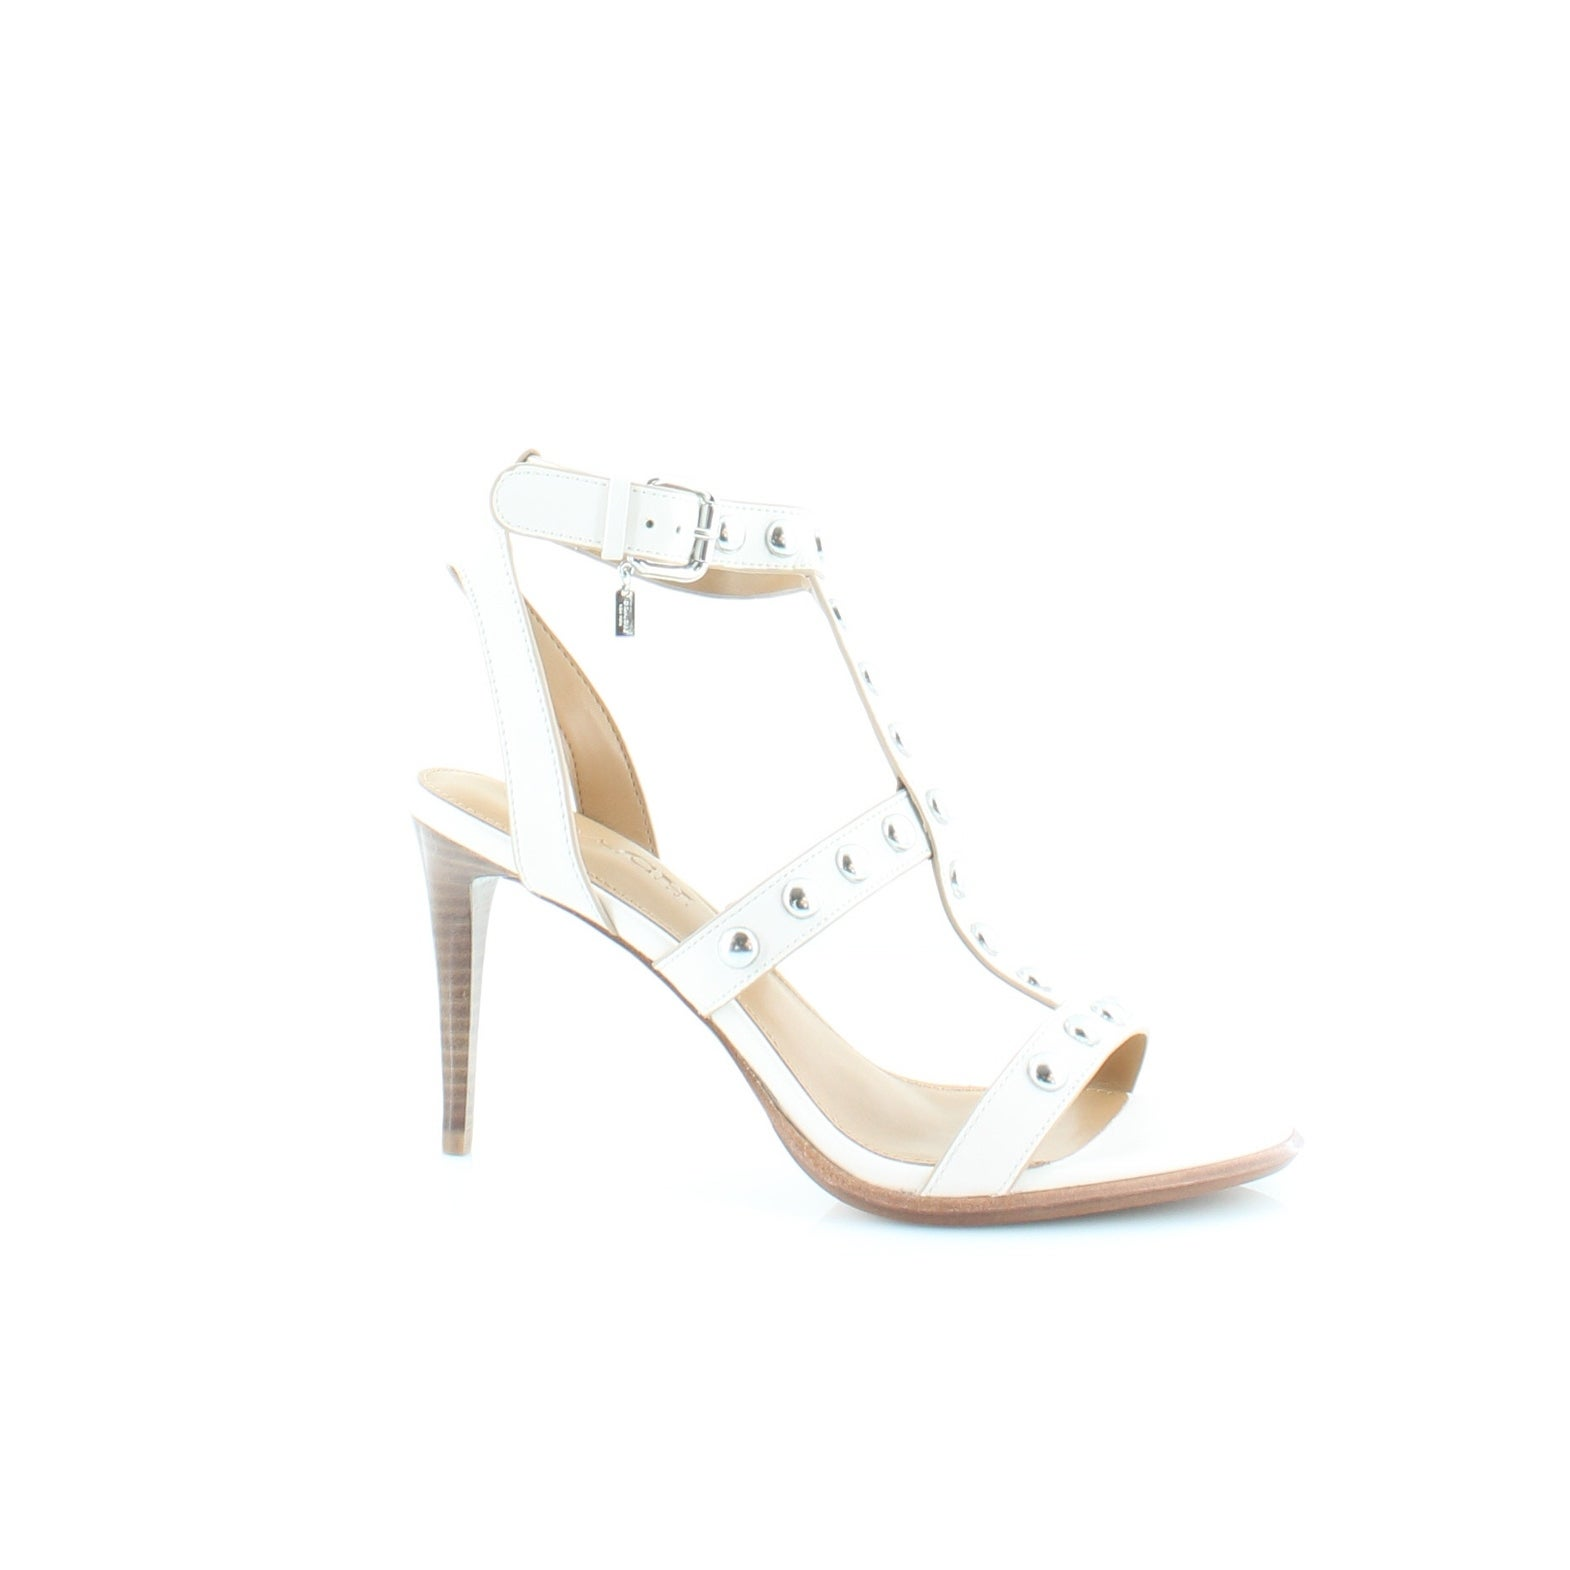 0fa7d7108c96 Shop Coach Isabel II Women s Heels Chalk - Free Shipping Today - Overstock  - 21551044